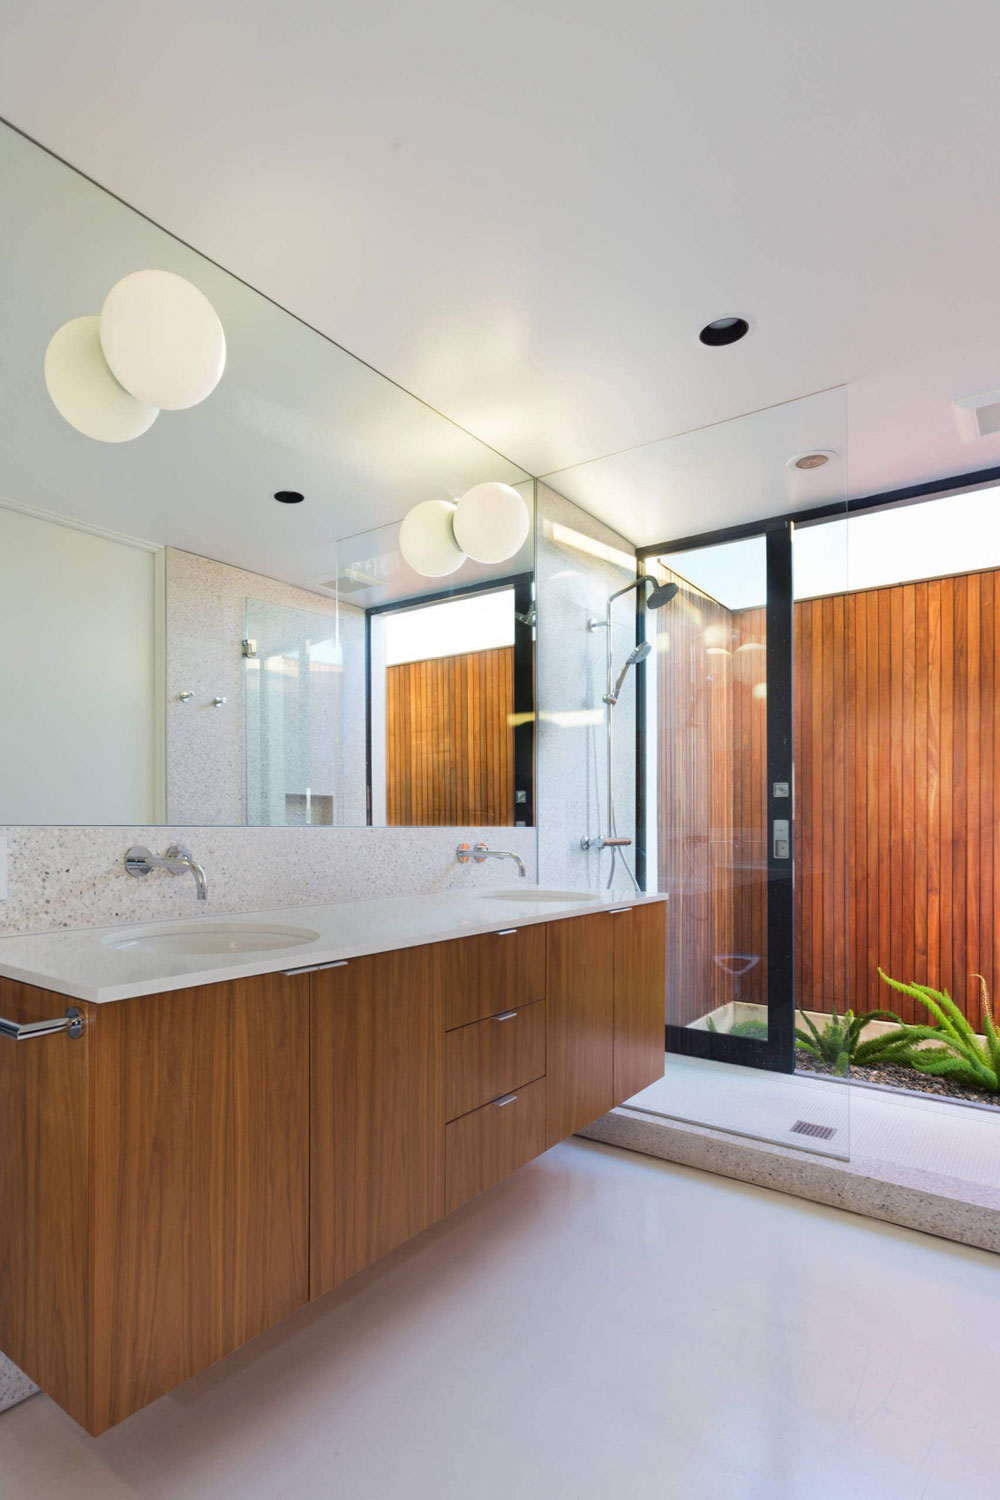 Beautiful sunny house created by Pierre Koenig and redesigned by Robert Sweet-161 Beautiful sunny house created by Pierre Koenig and redesigned by Robert Sweet